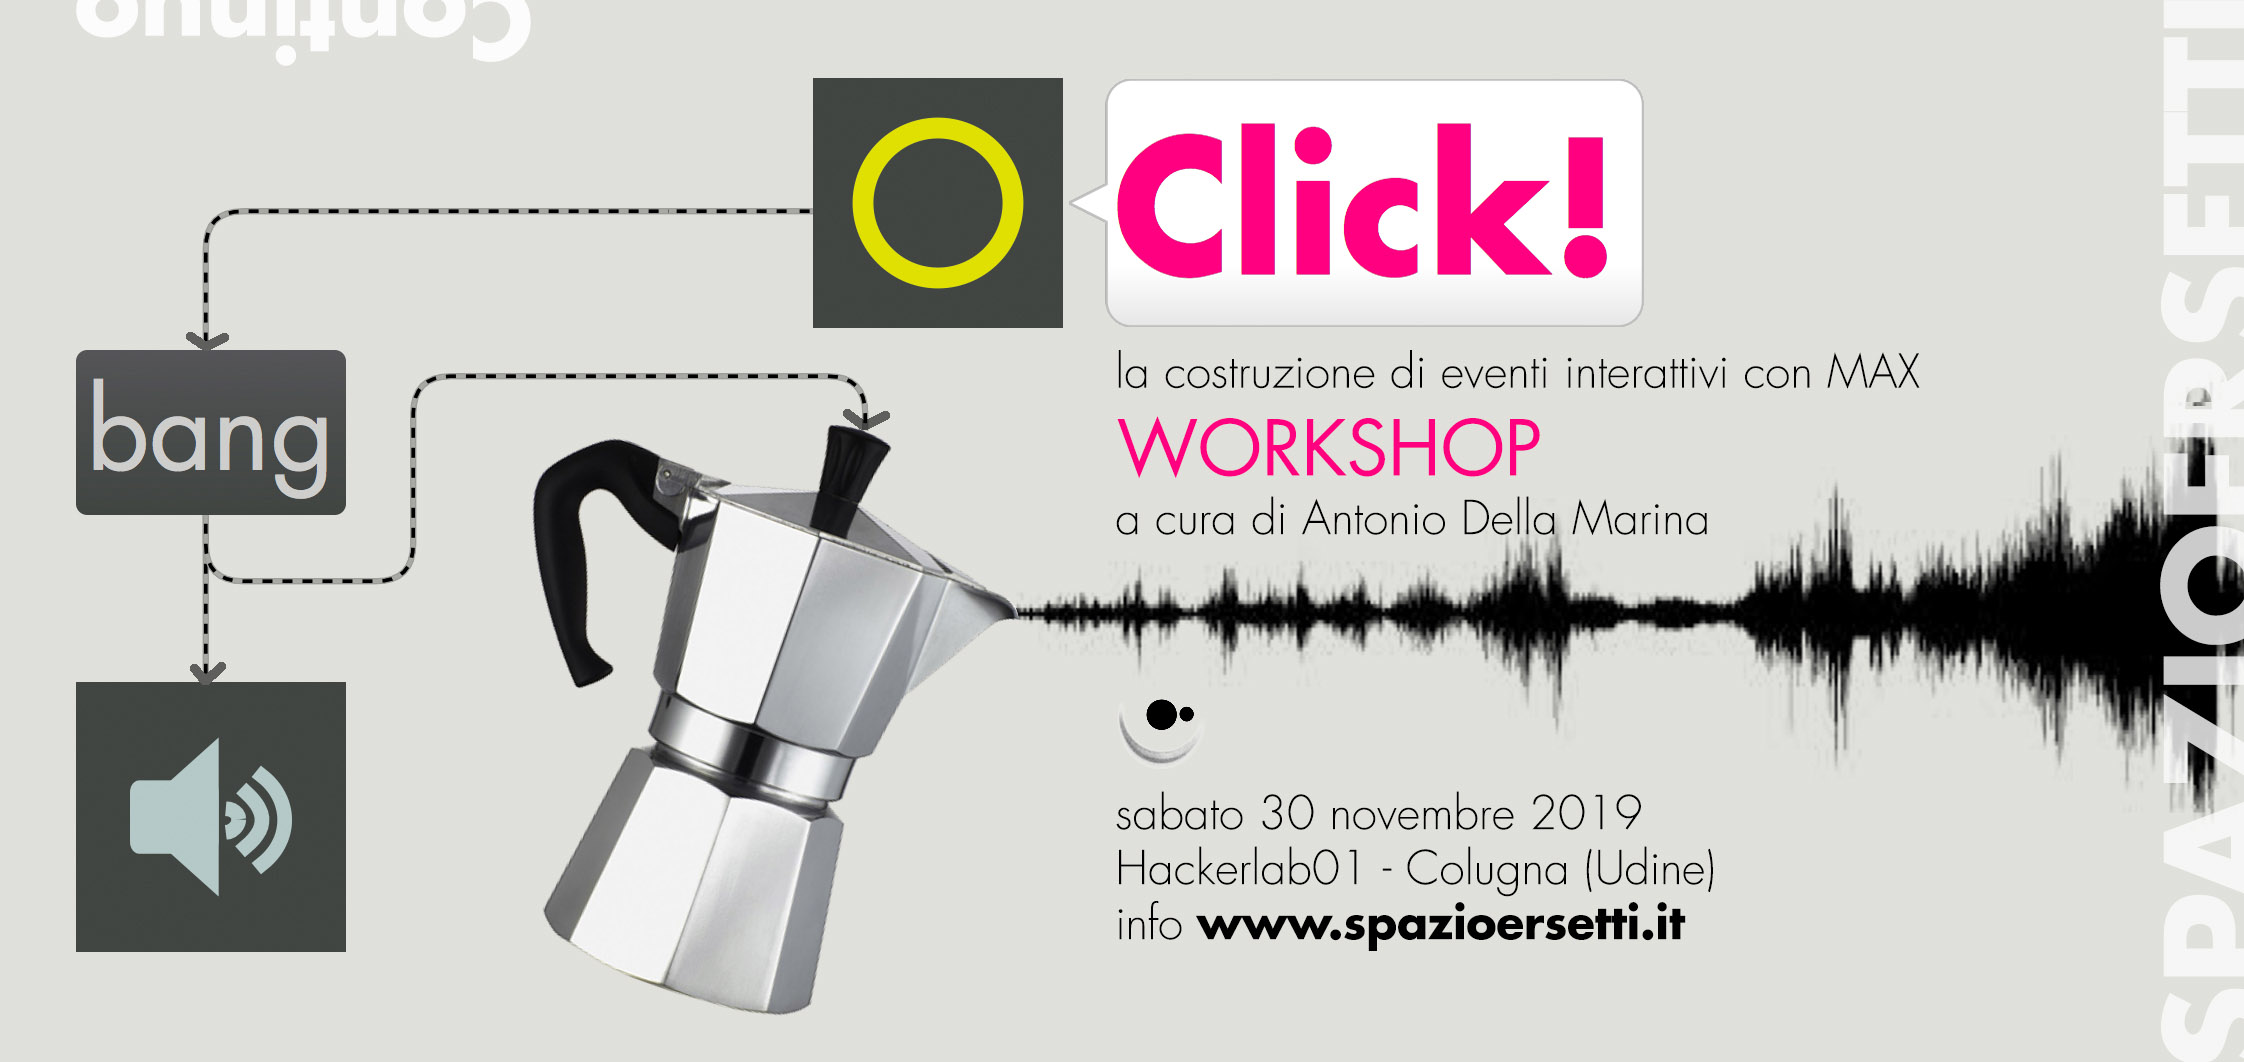 CLICK! CLICK! BANG! BANG! – workshop